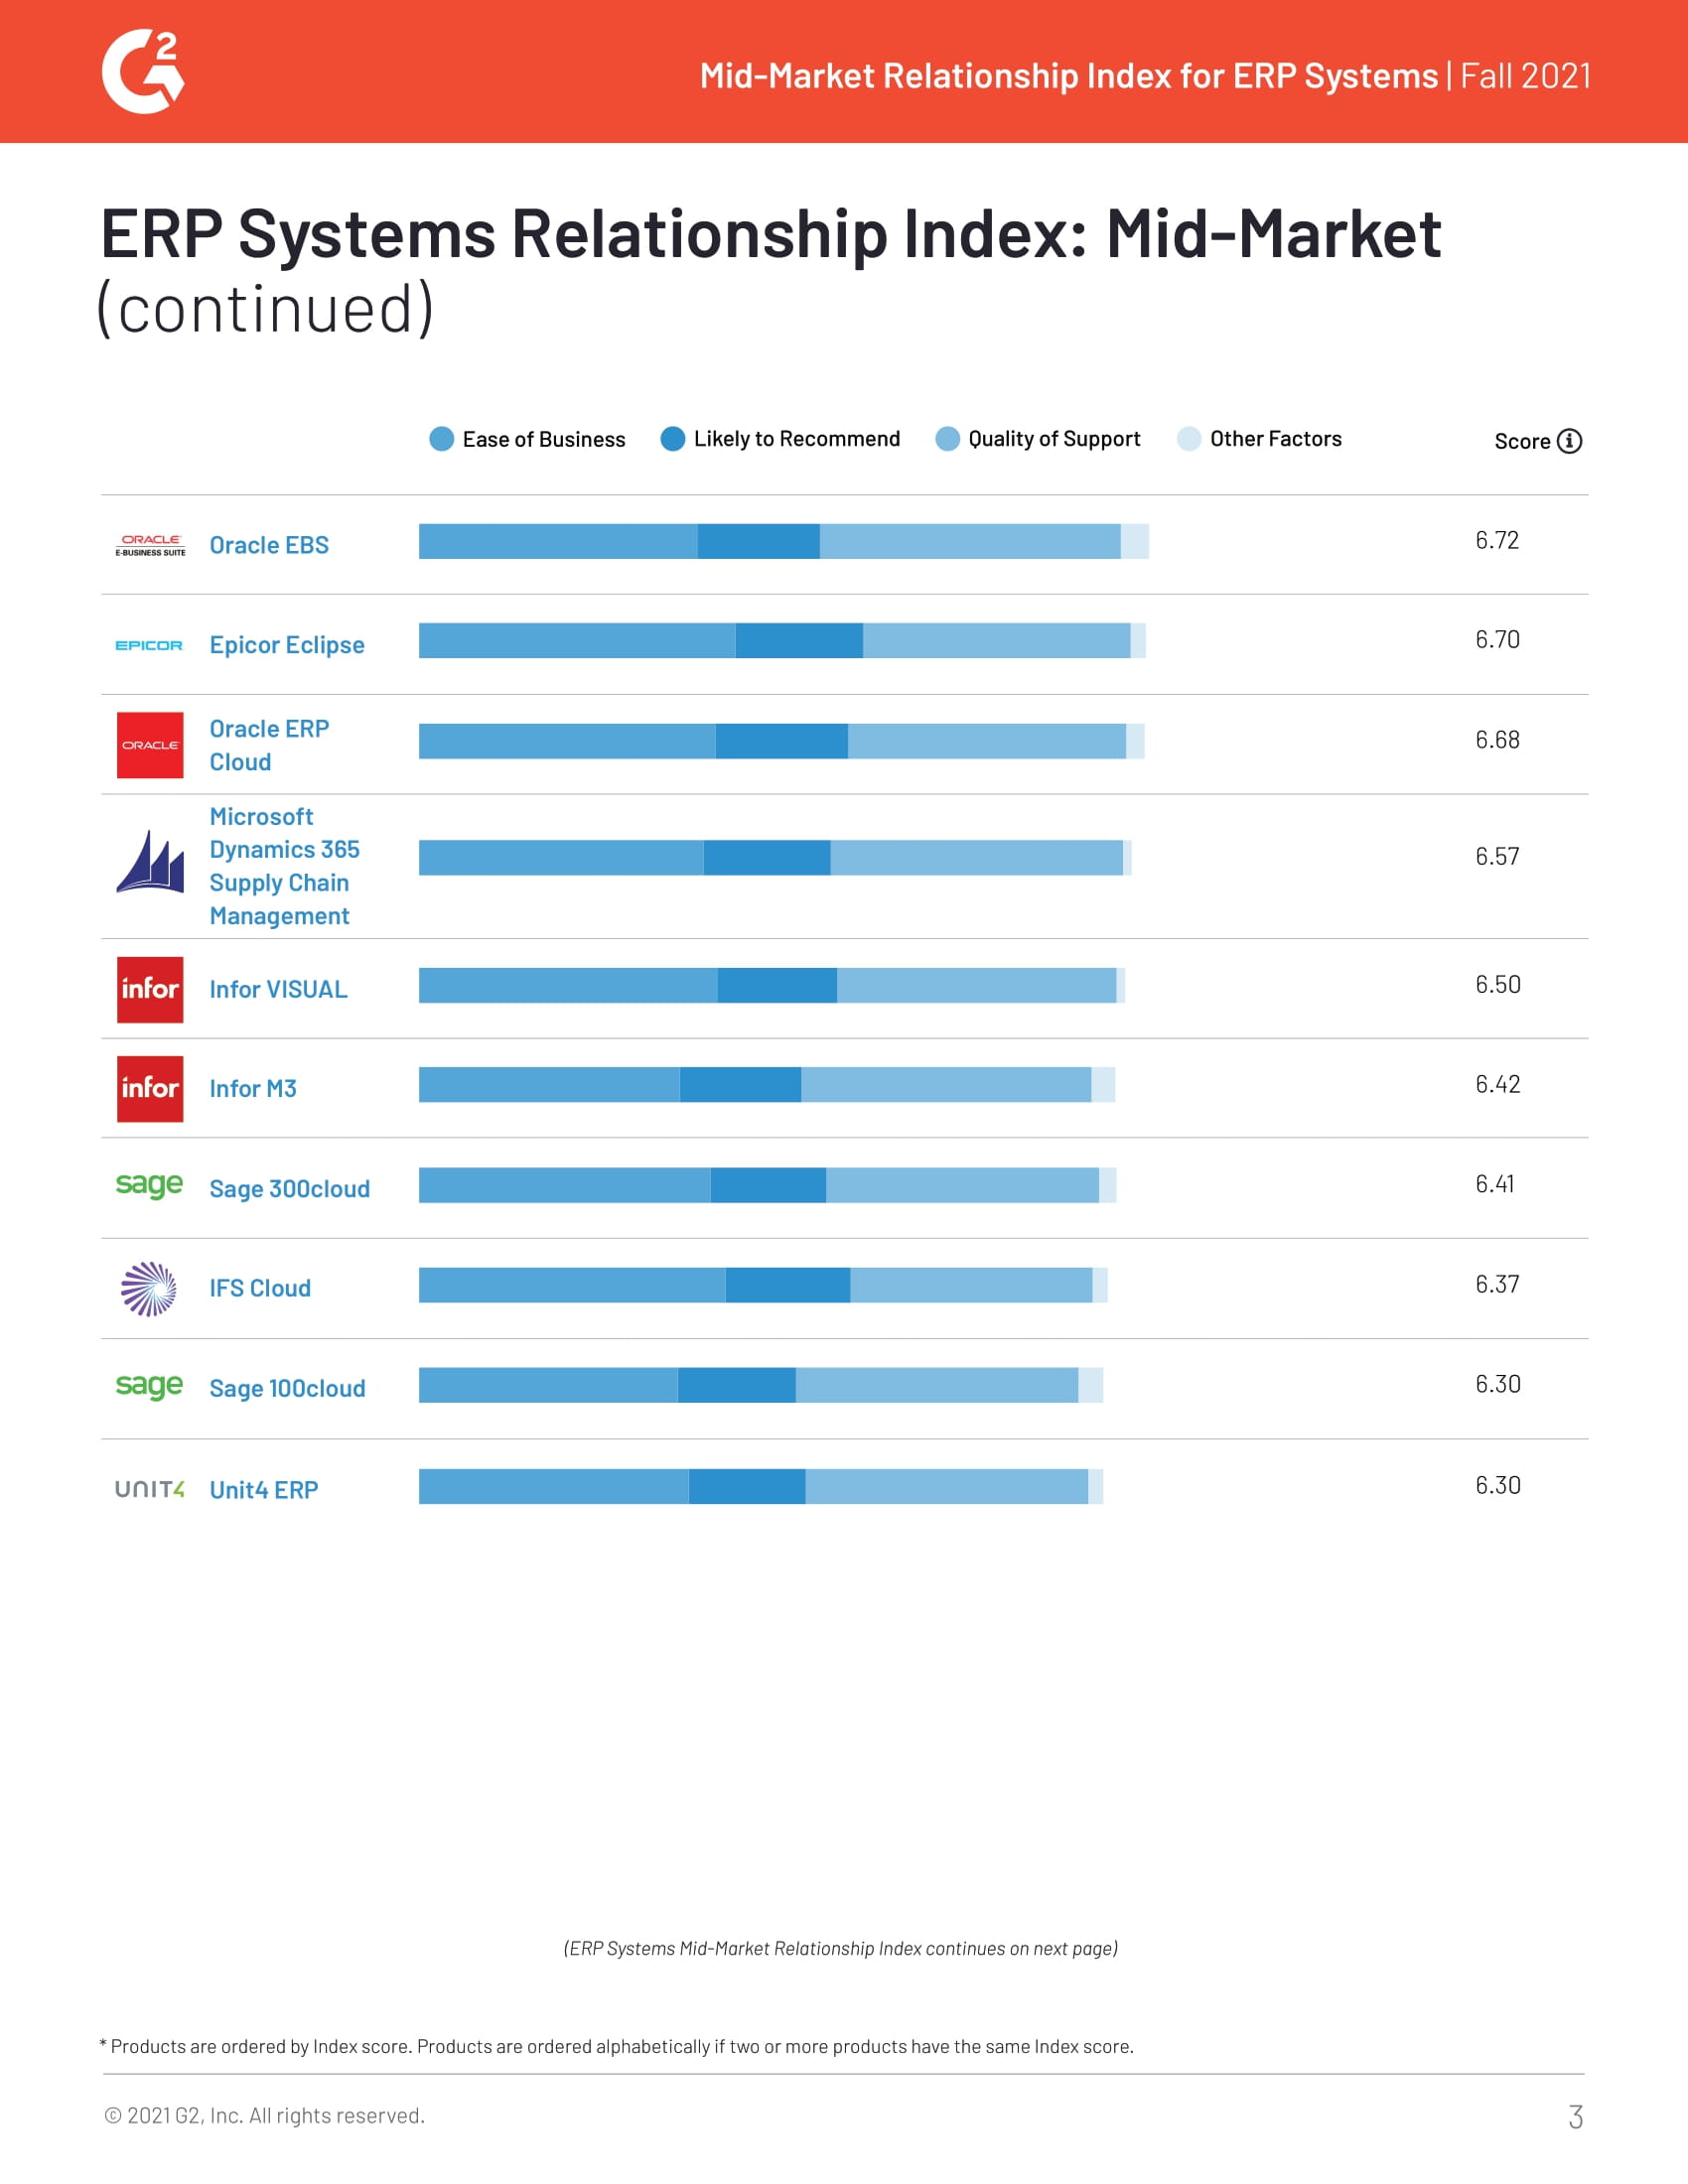 Acumatica Ranks #1 in Mid-Market Relationship Index, page 2